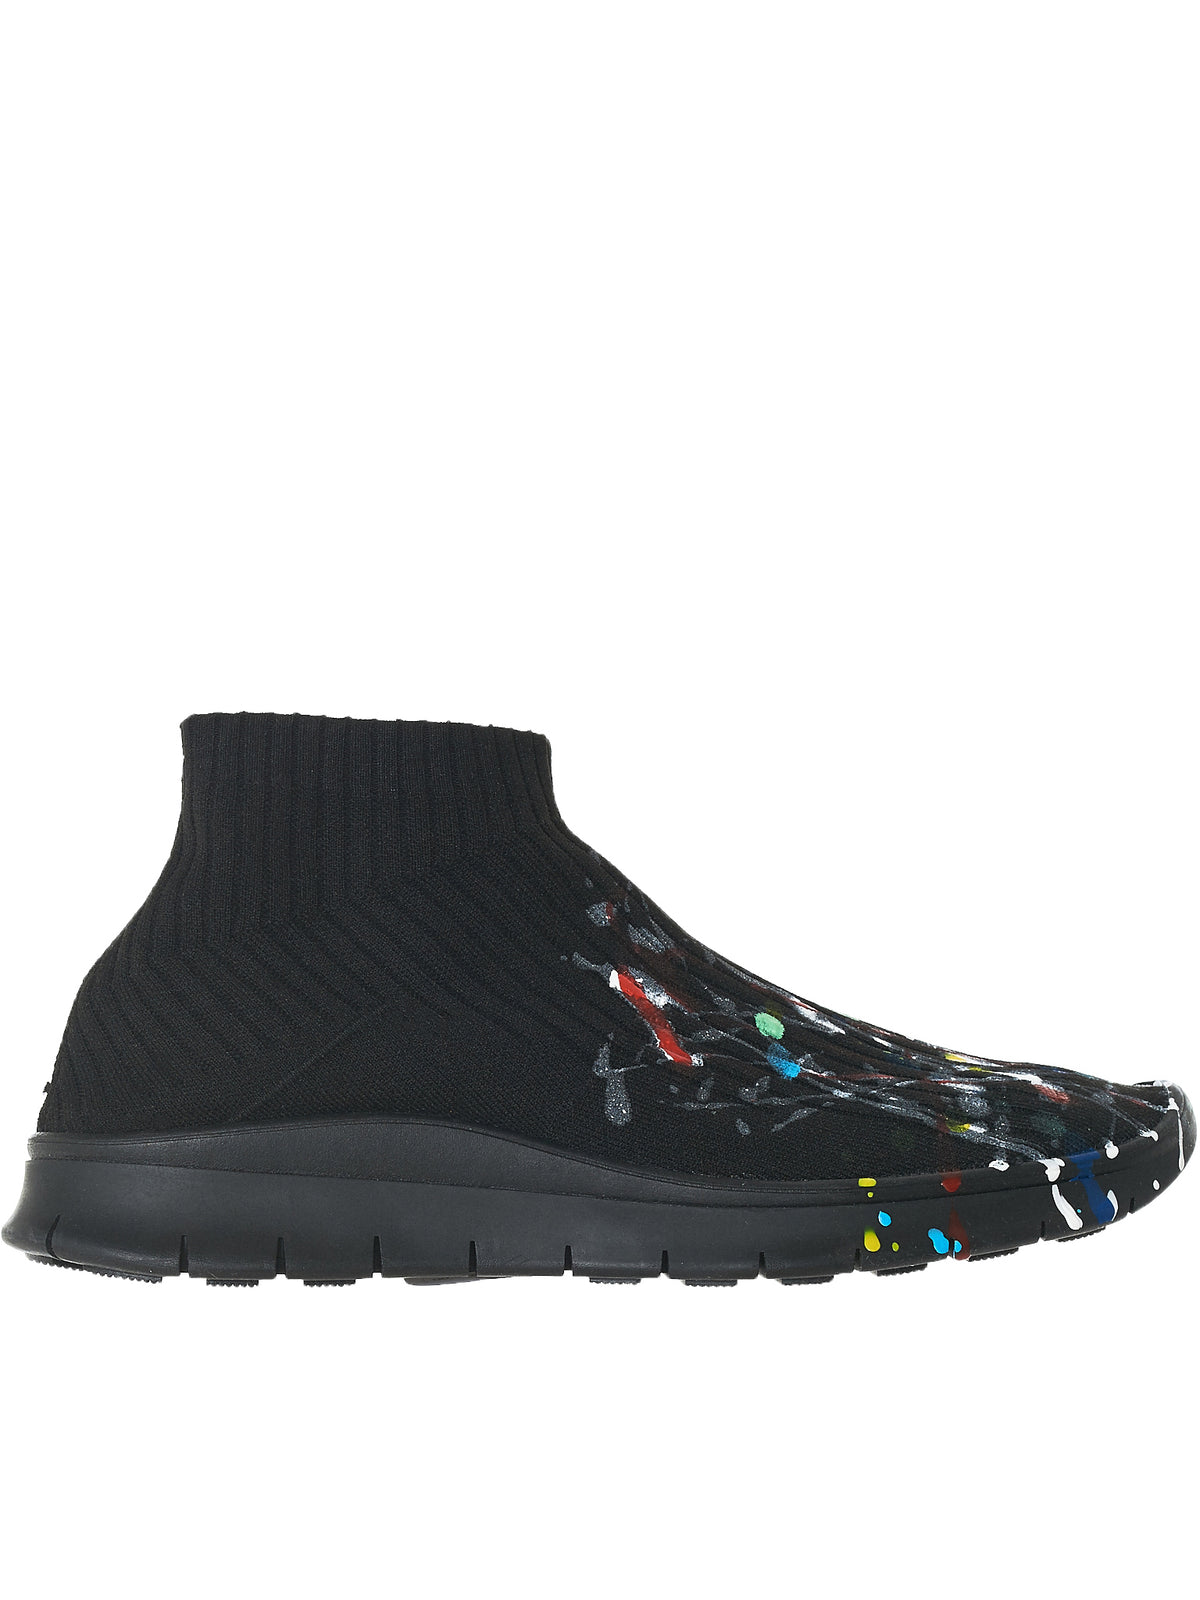 Maison Margiela Paint Sneakers - Hlorenzo Side